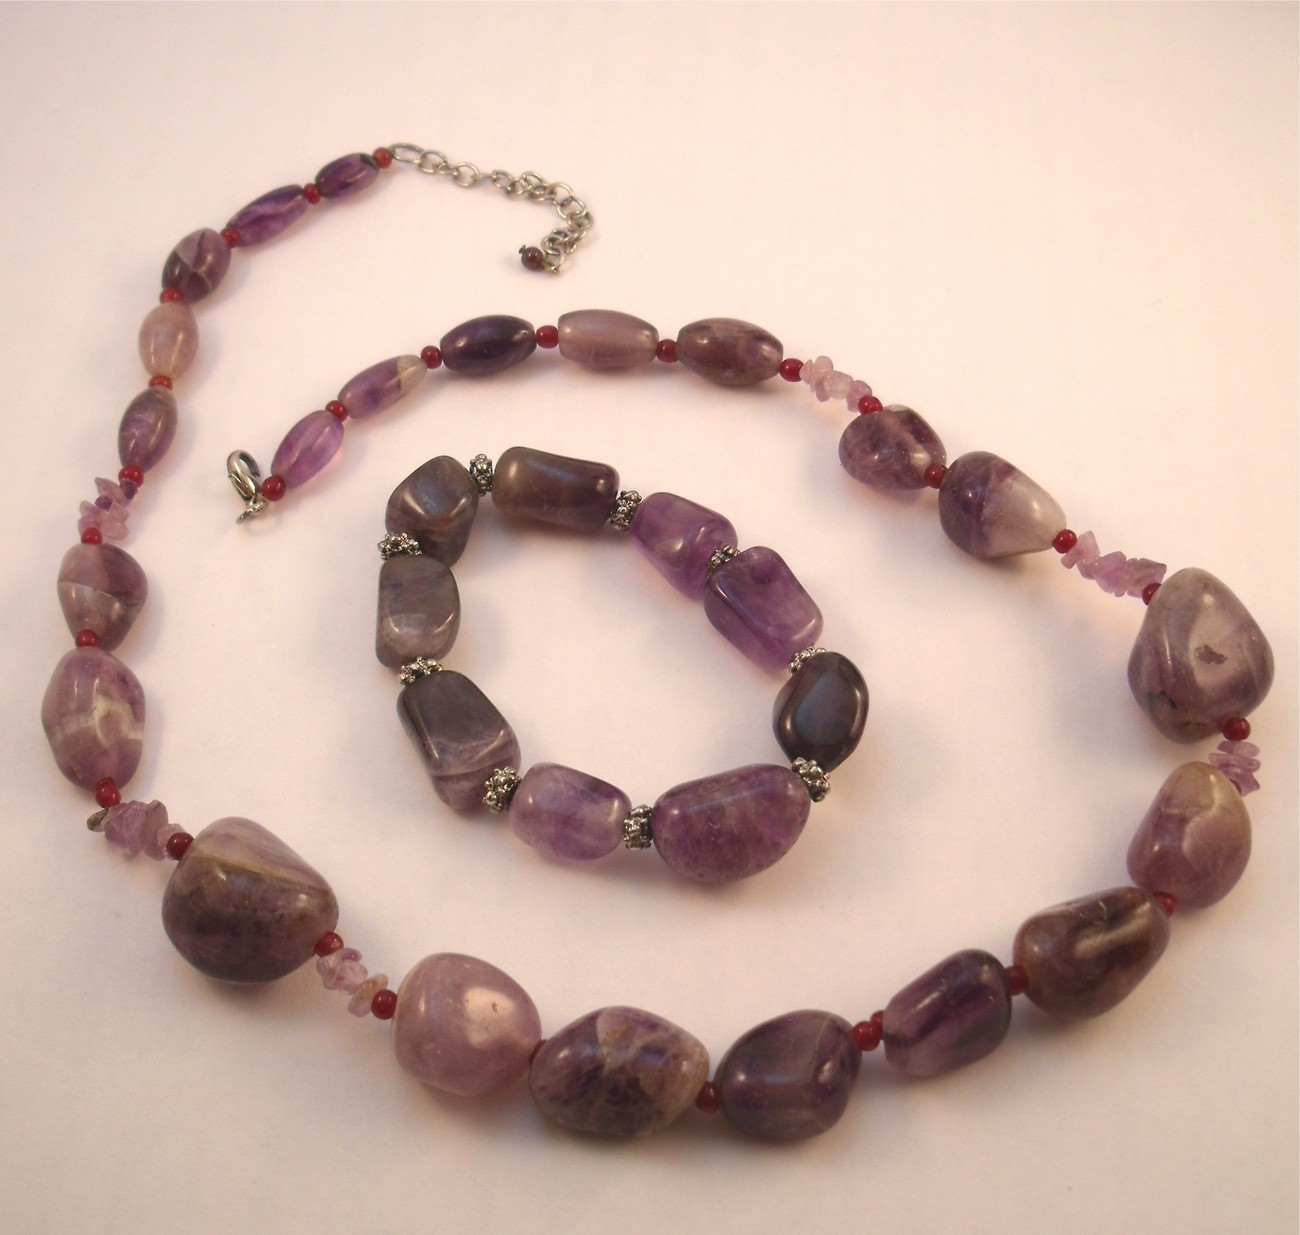 Amethyst pebble necklace and bracelet